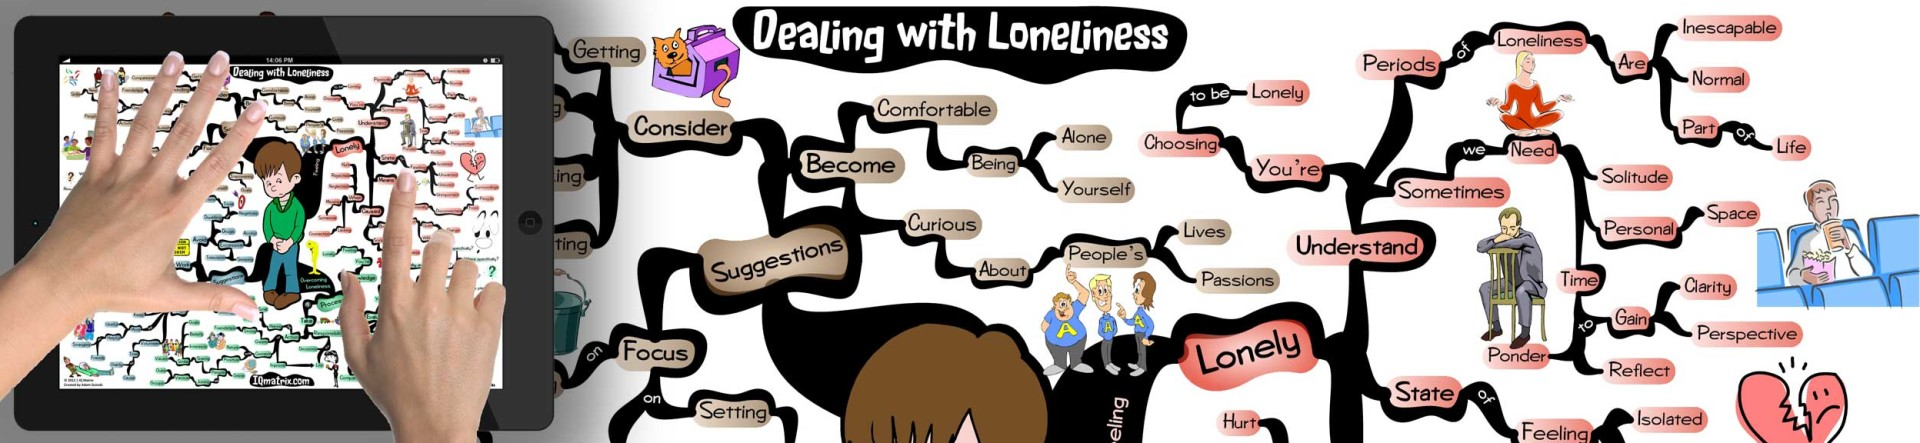 How to deal with loneliness and reconnect with others